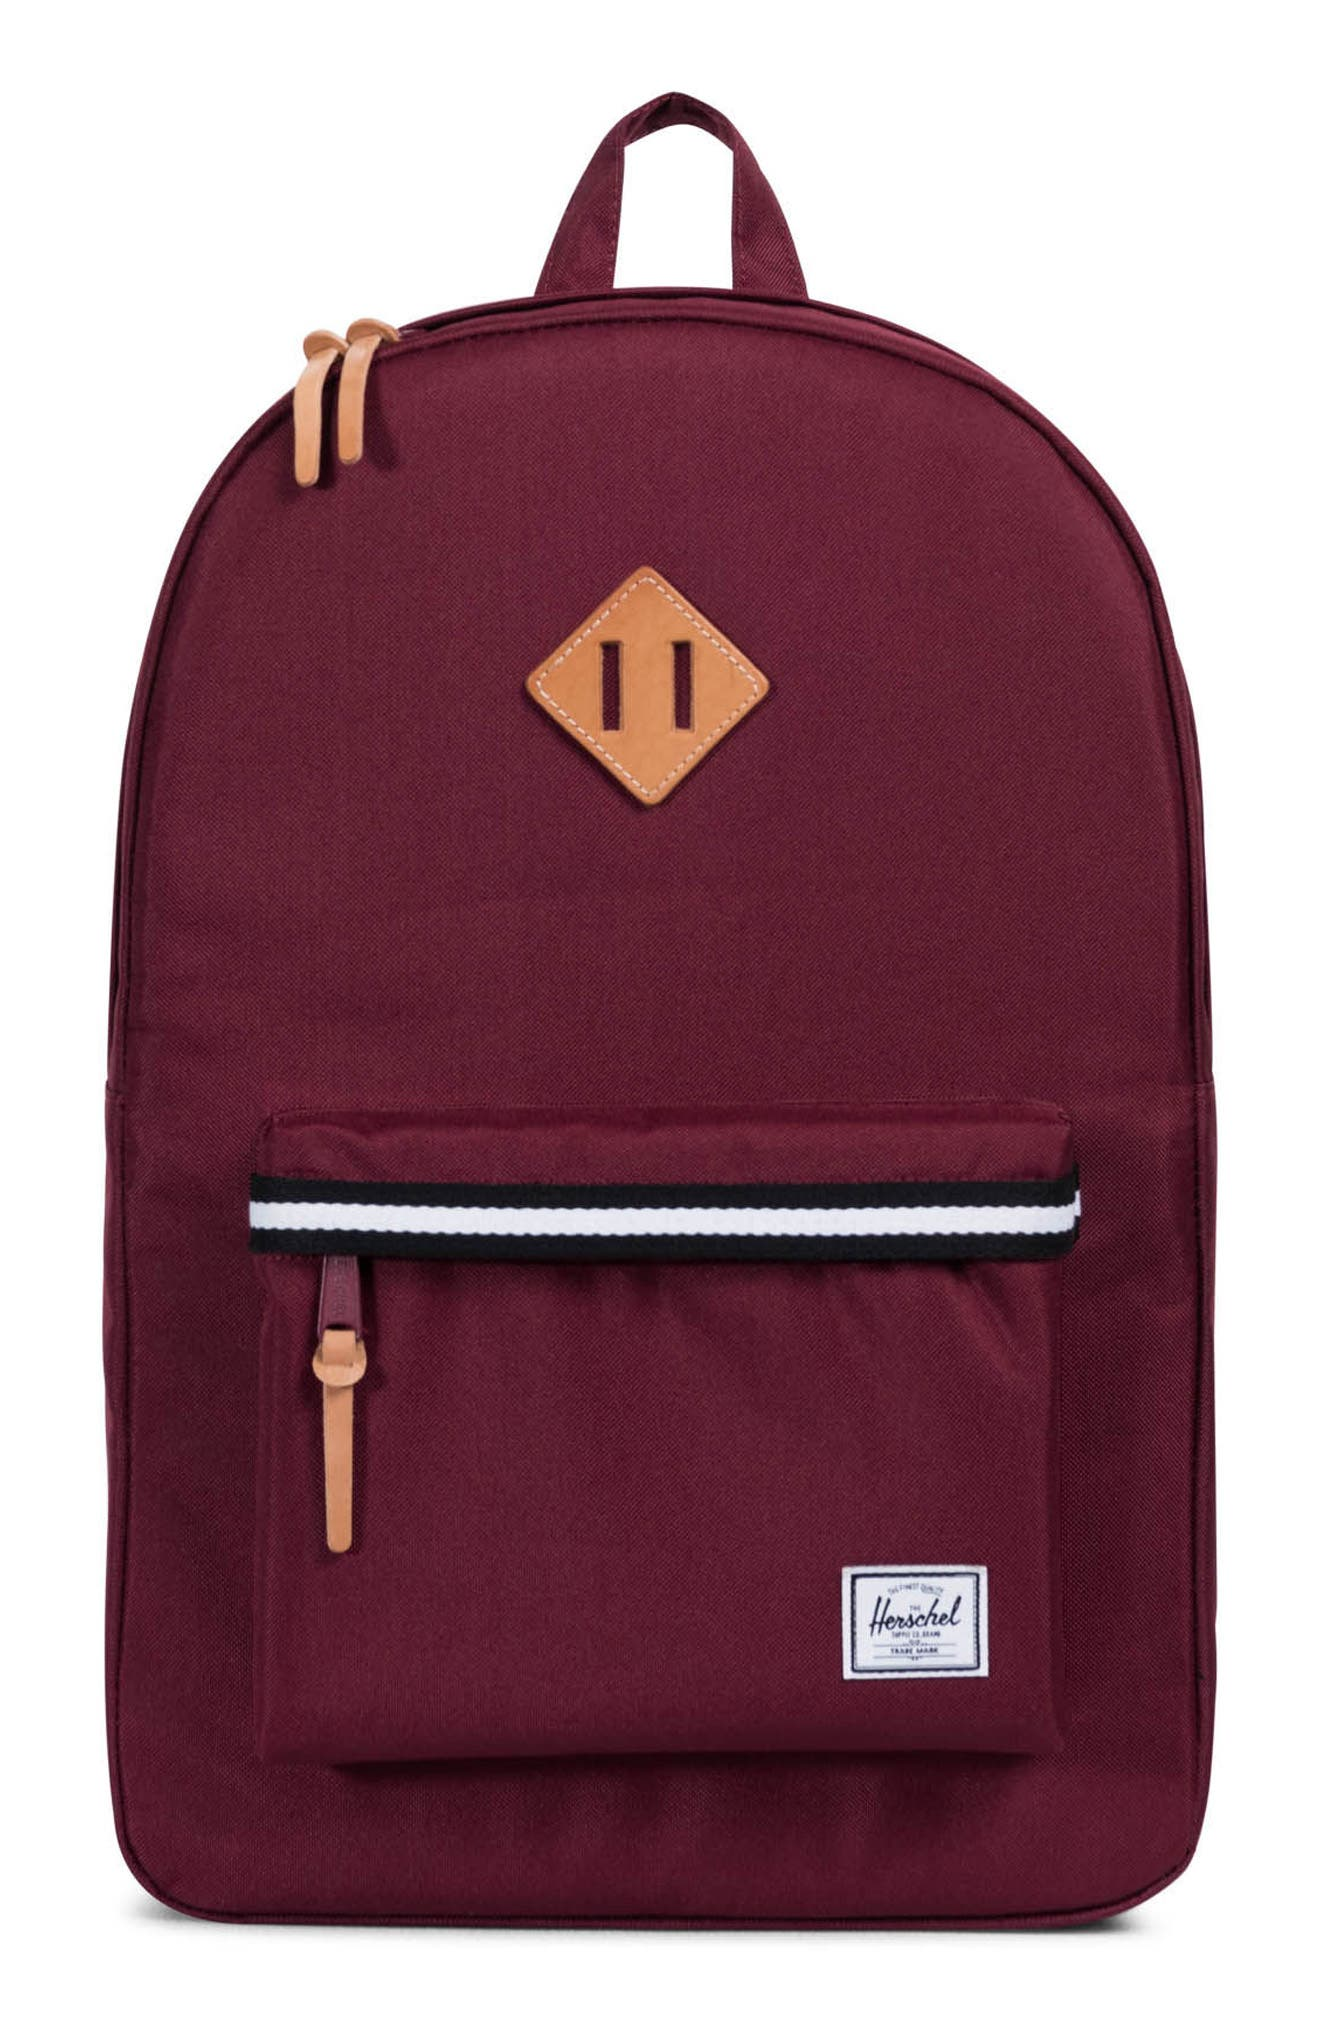 Herschel Supply Co. Heritage Offset Stripe Backpack